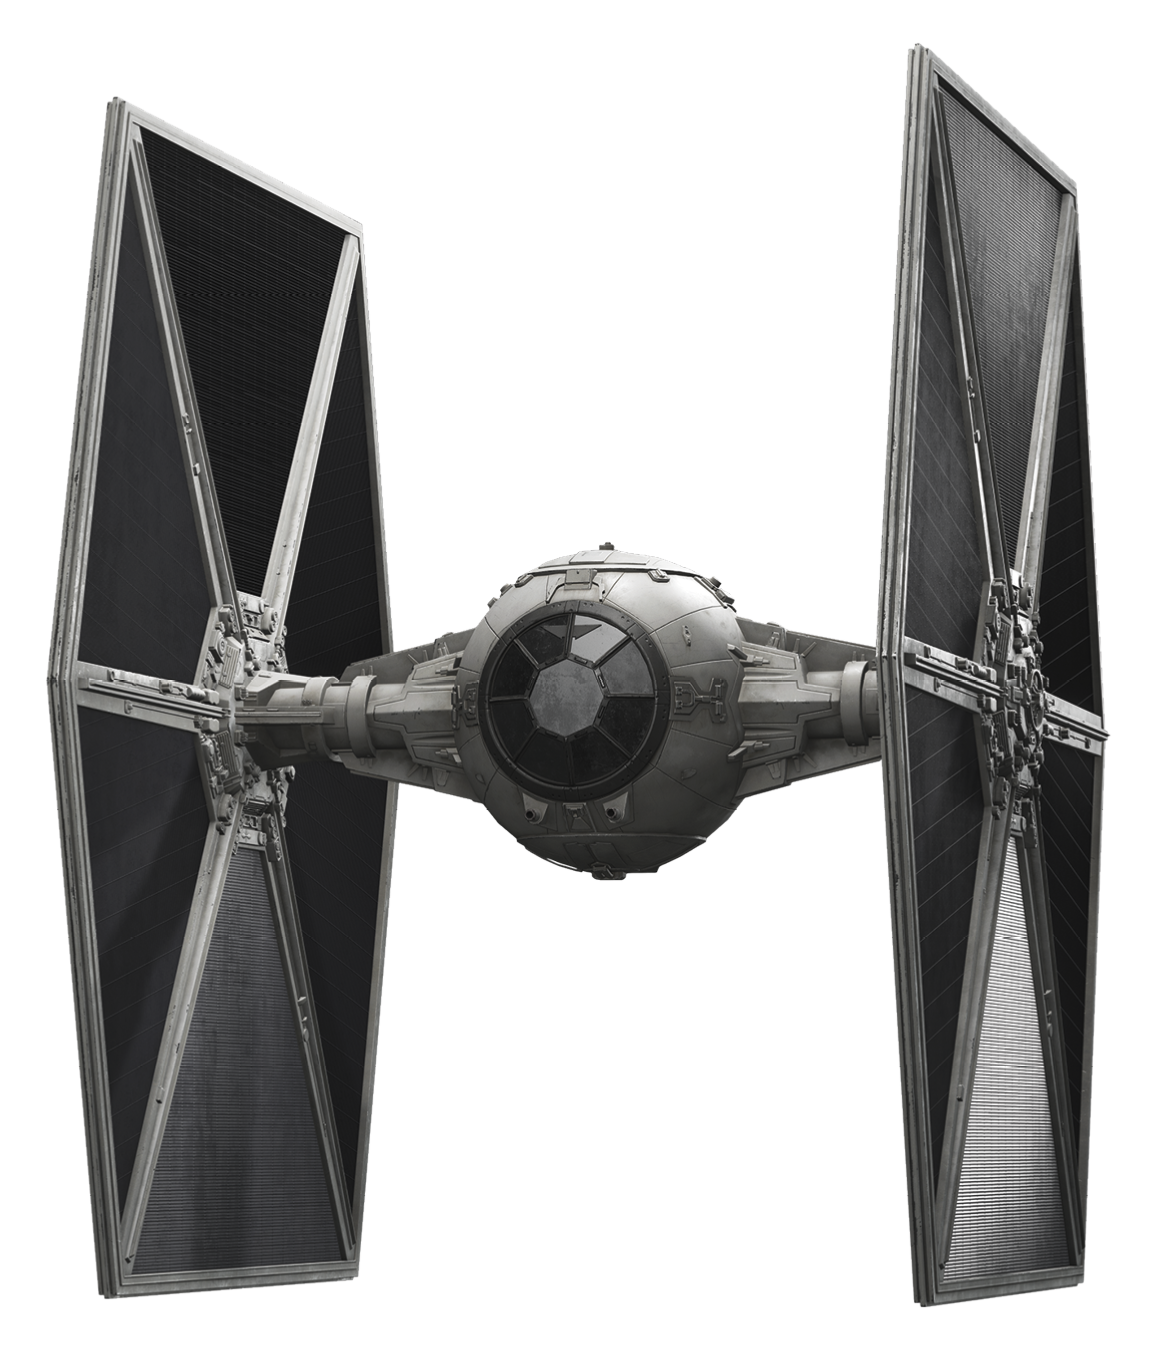 Star Wars: 5 Reasons Why the TIE Fighter Sucks